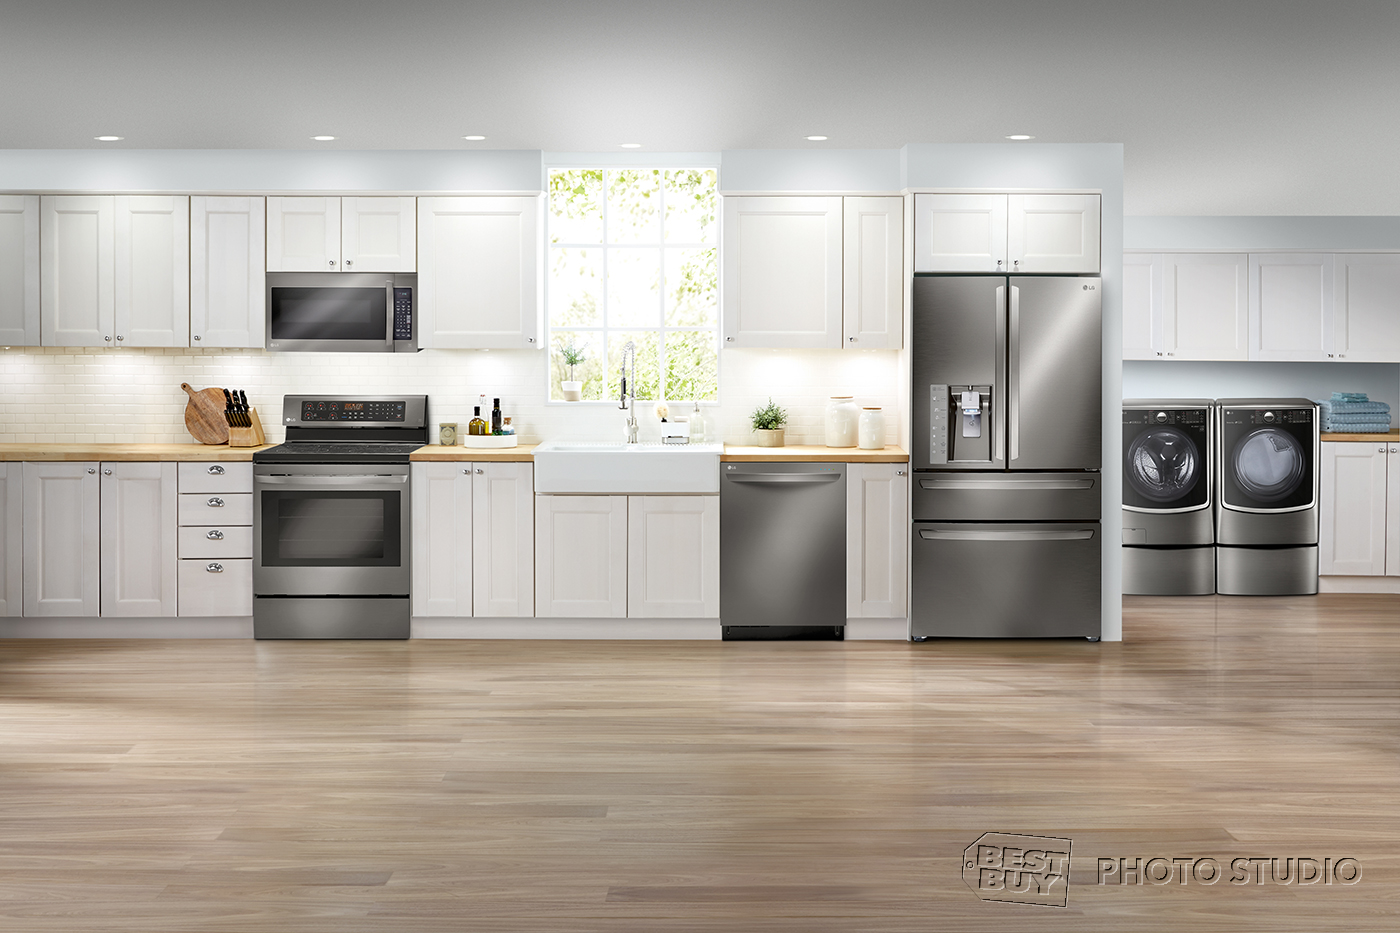 LG Studio Appliances for Earth Day - JenOni